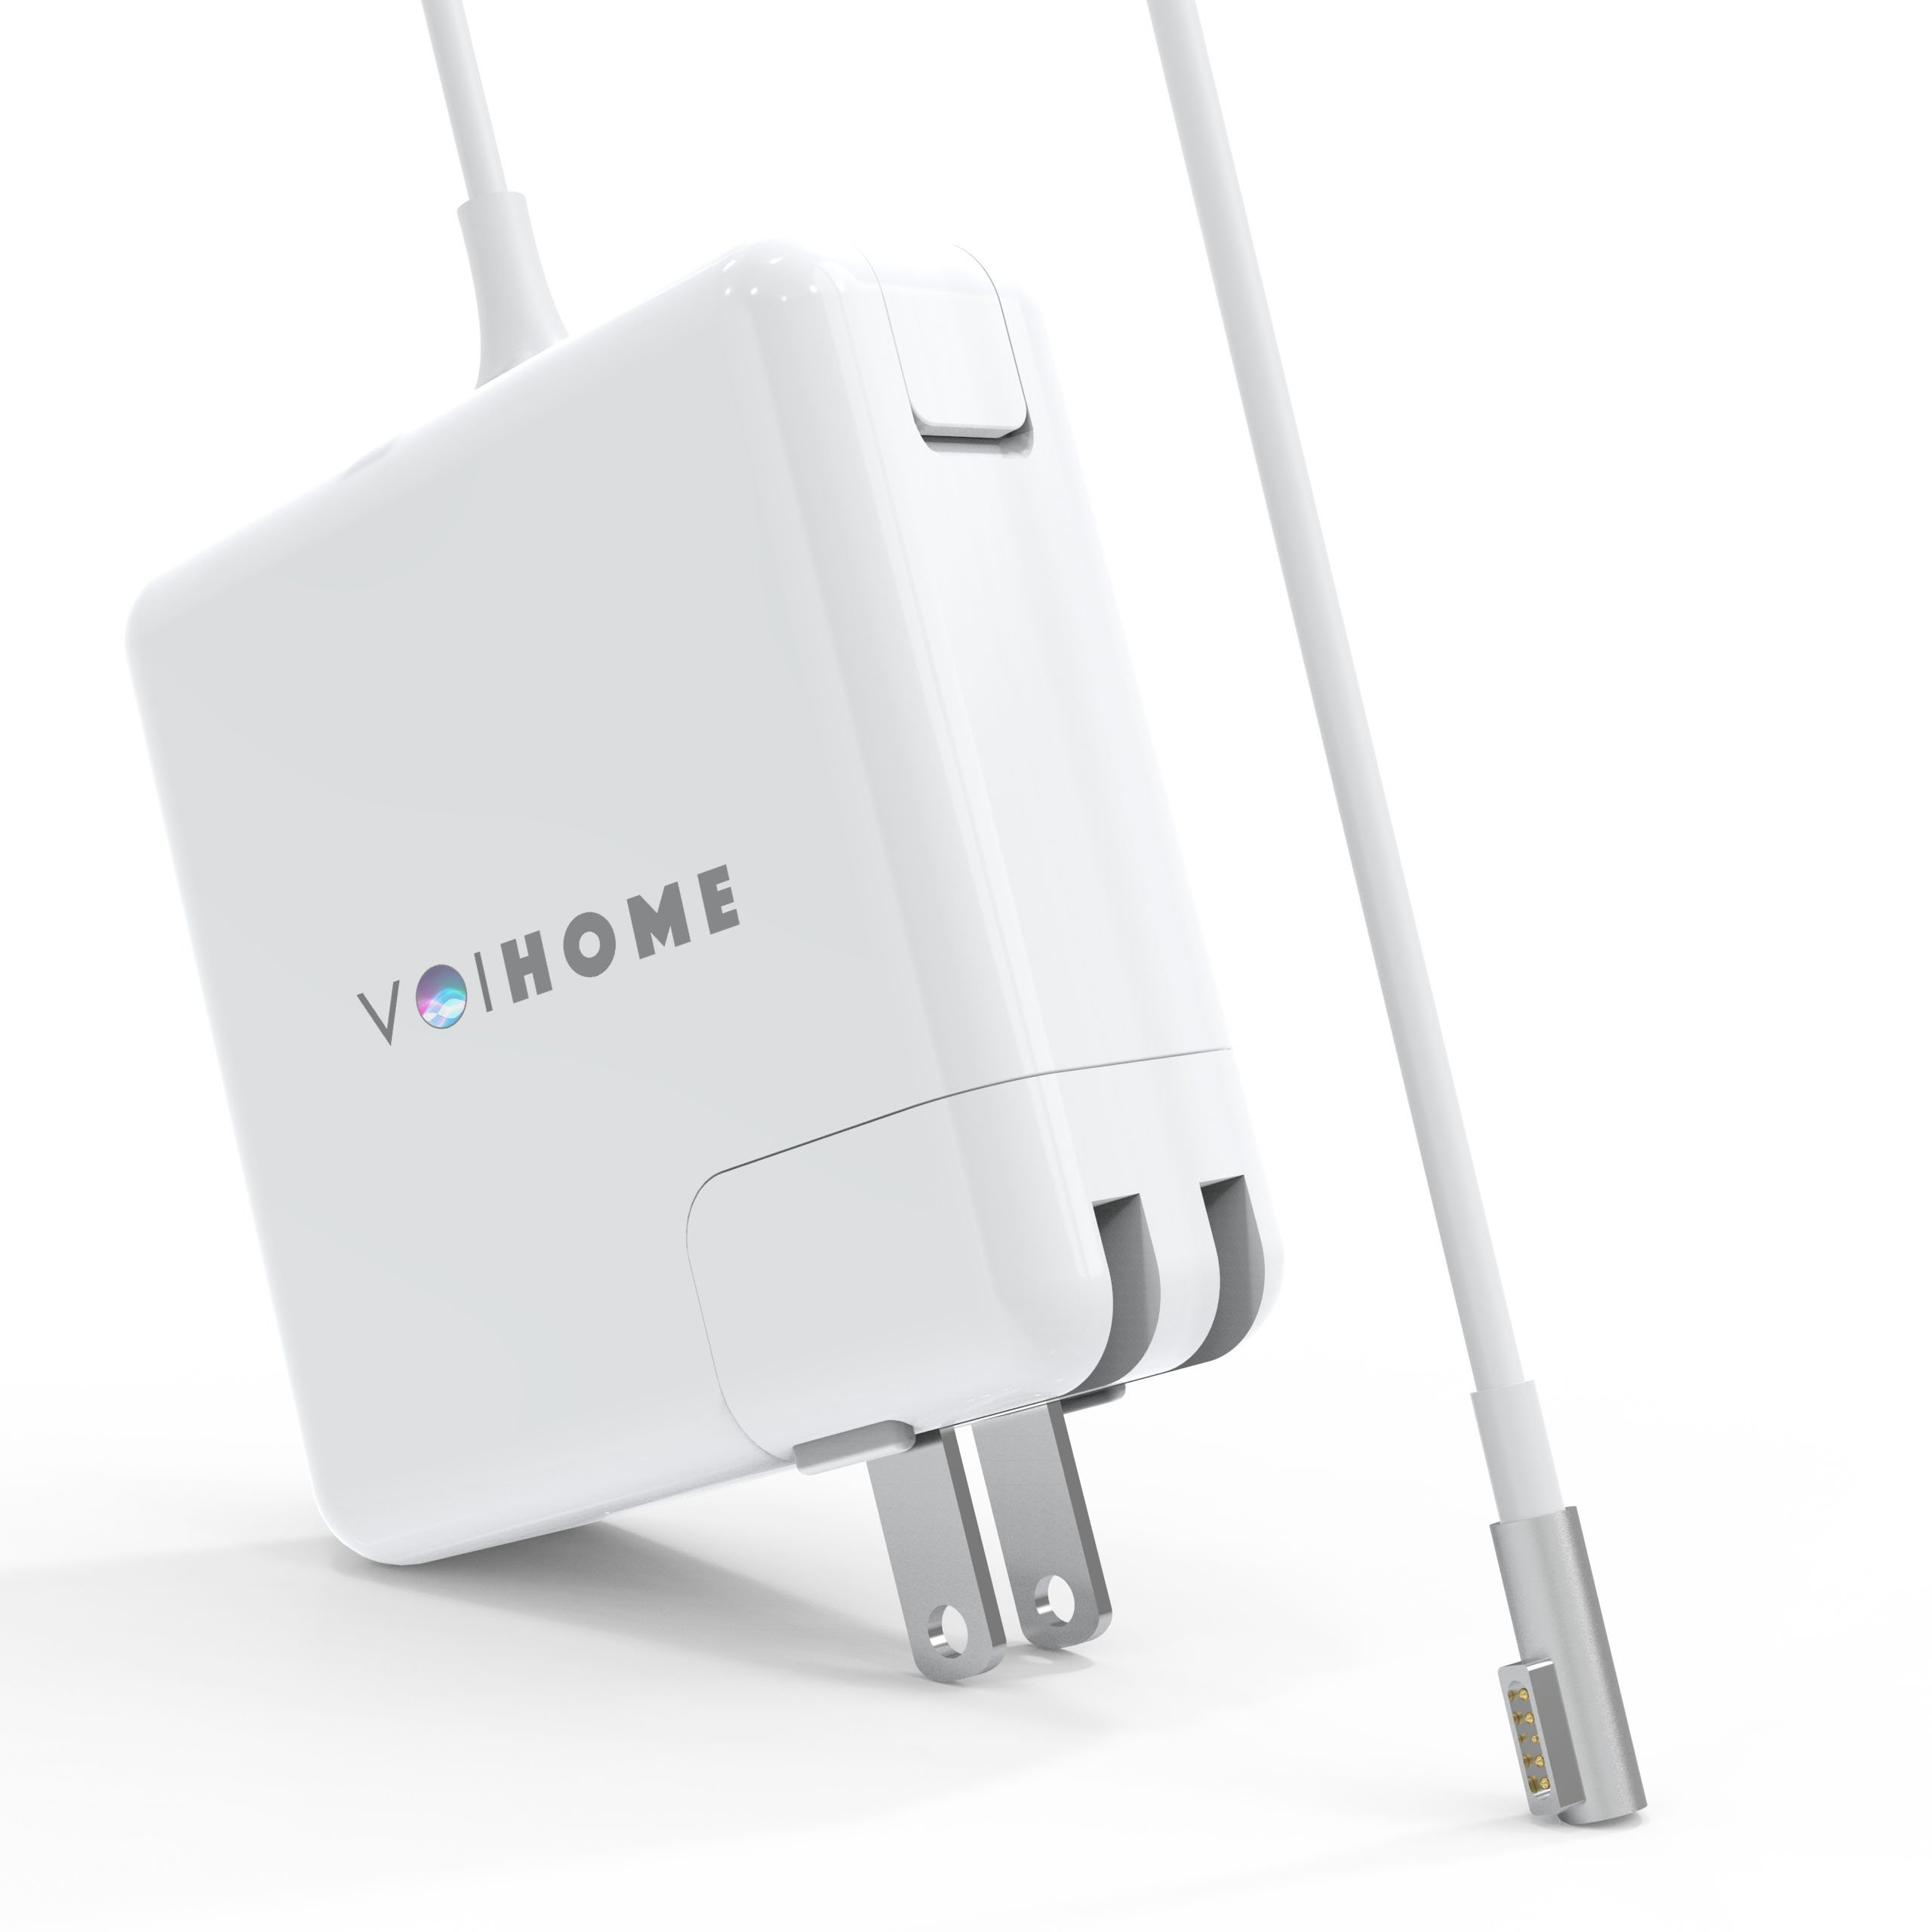 MacBook Pro Charging Adapter, Replacement of voihome 85W L-Tip MagSafe Power Adapter for Macbook Pro Charger 13-inch (Before Mid 2012 Models) (85W-L)